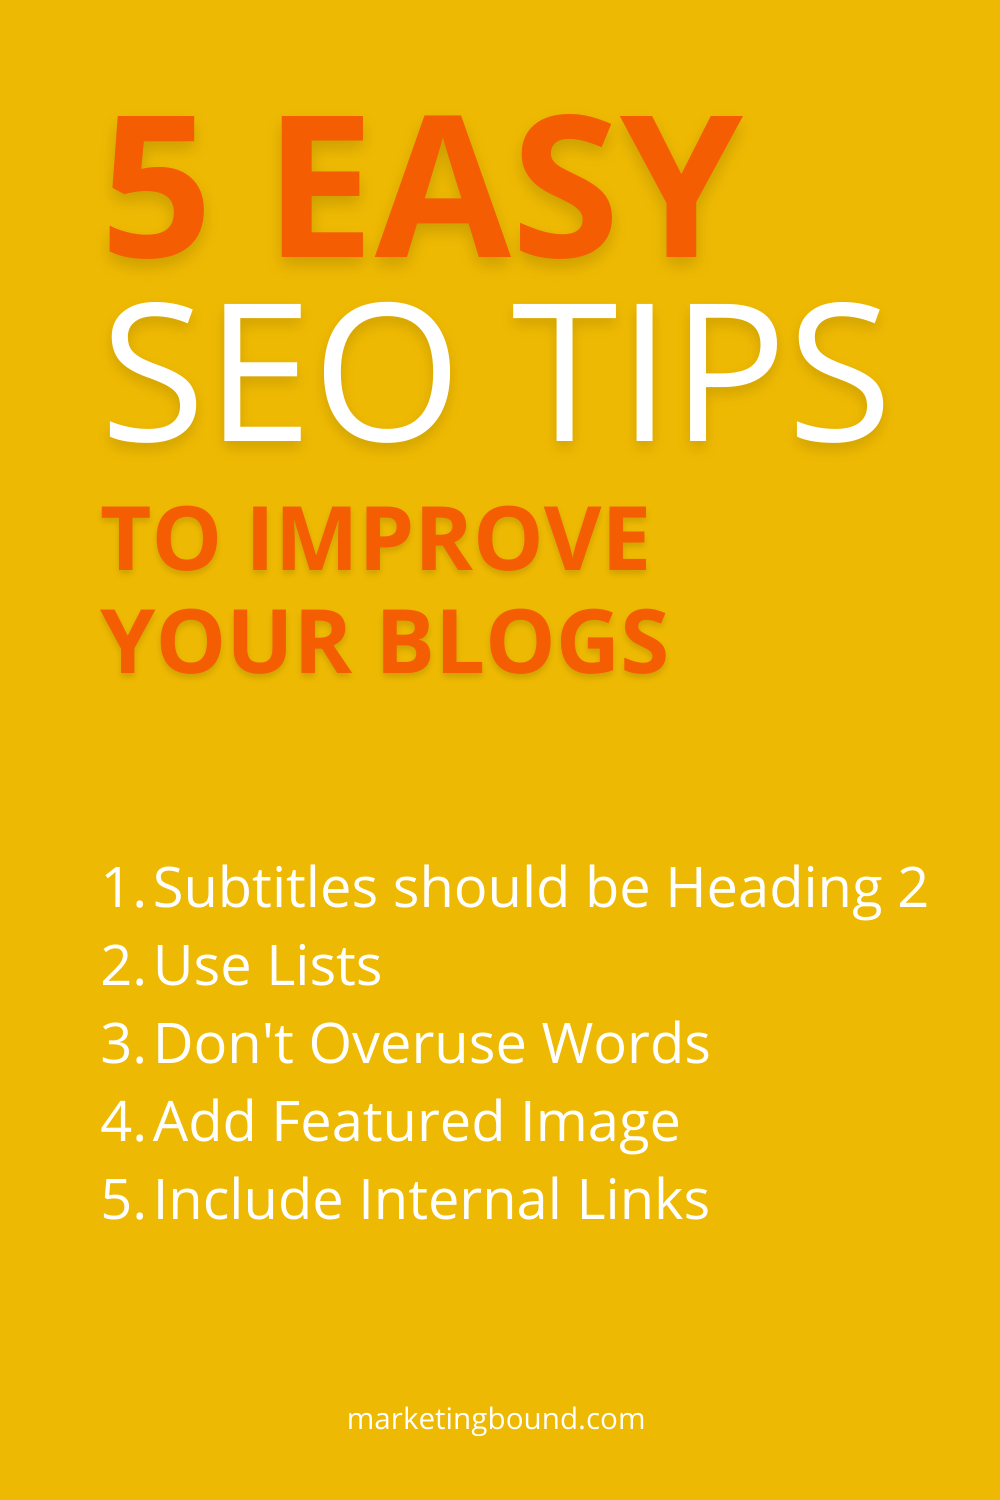 SEO tips for blogging